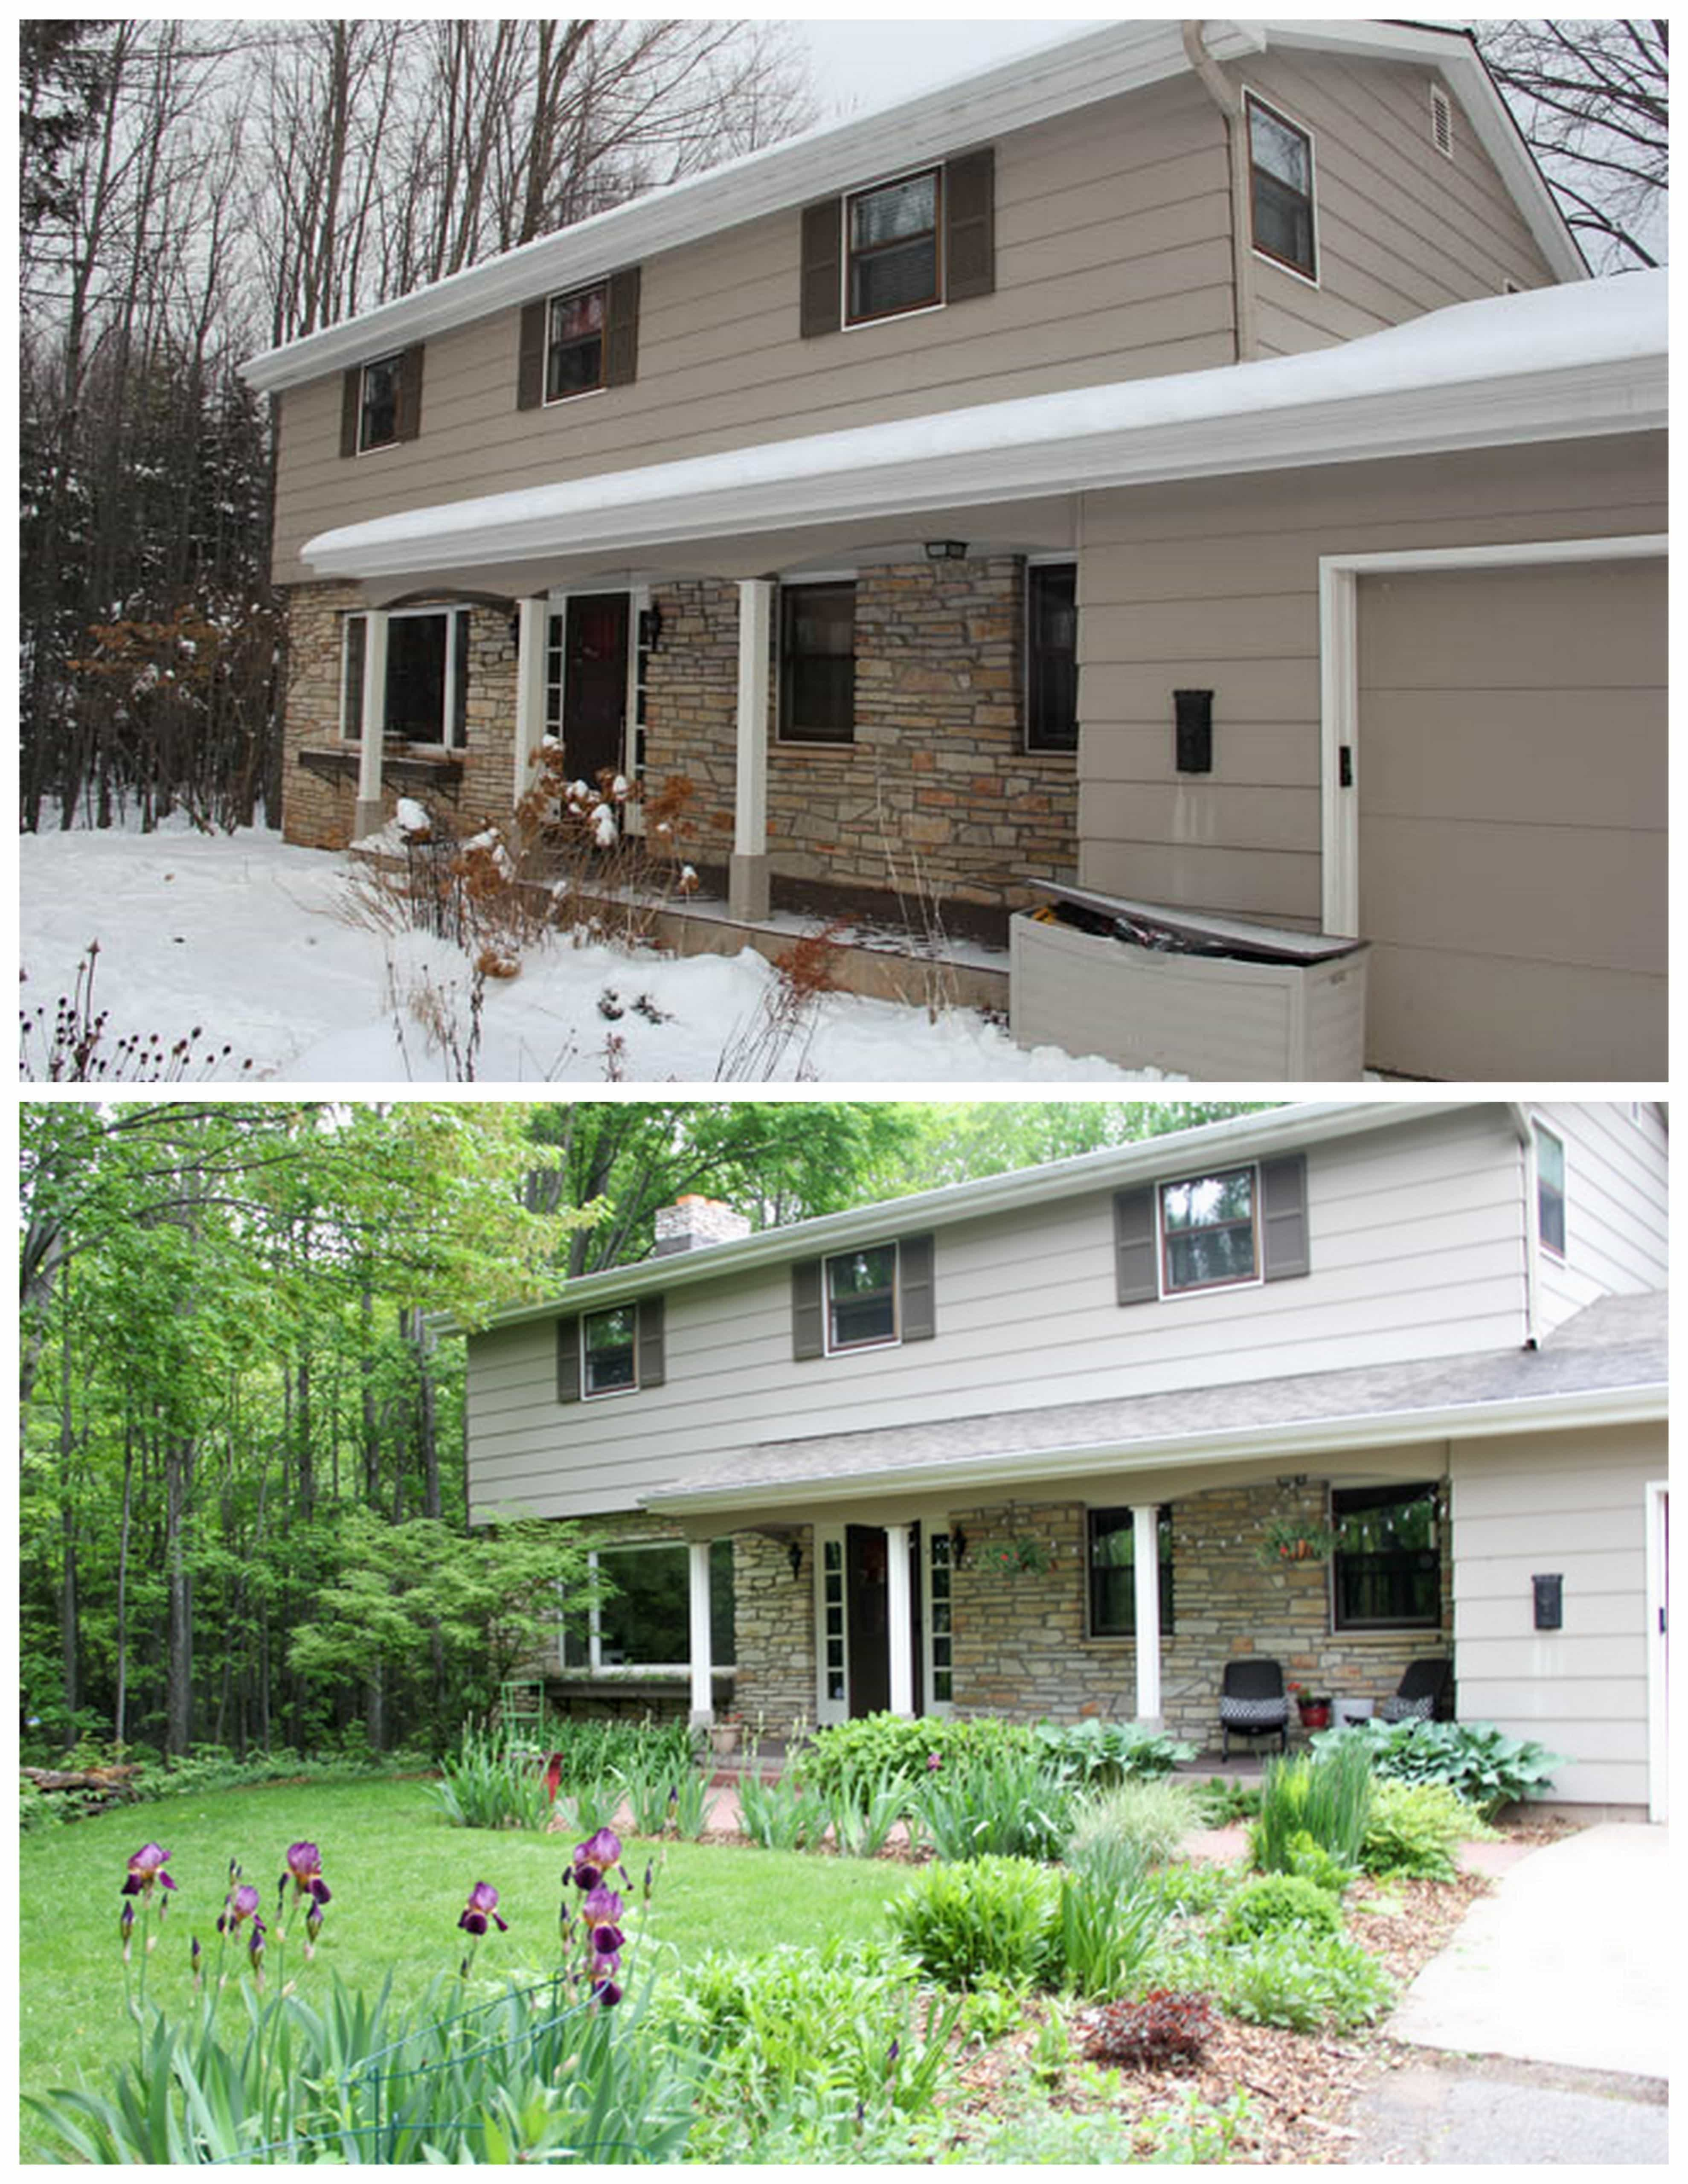 Two Story House Before and After